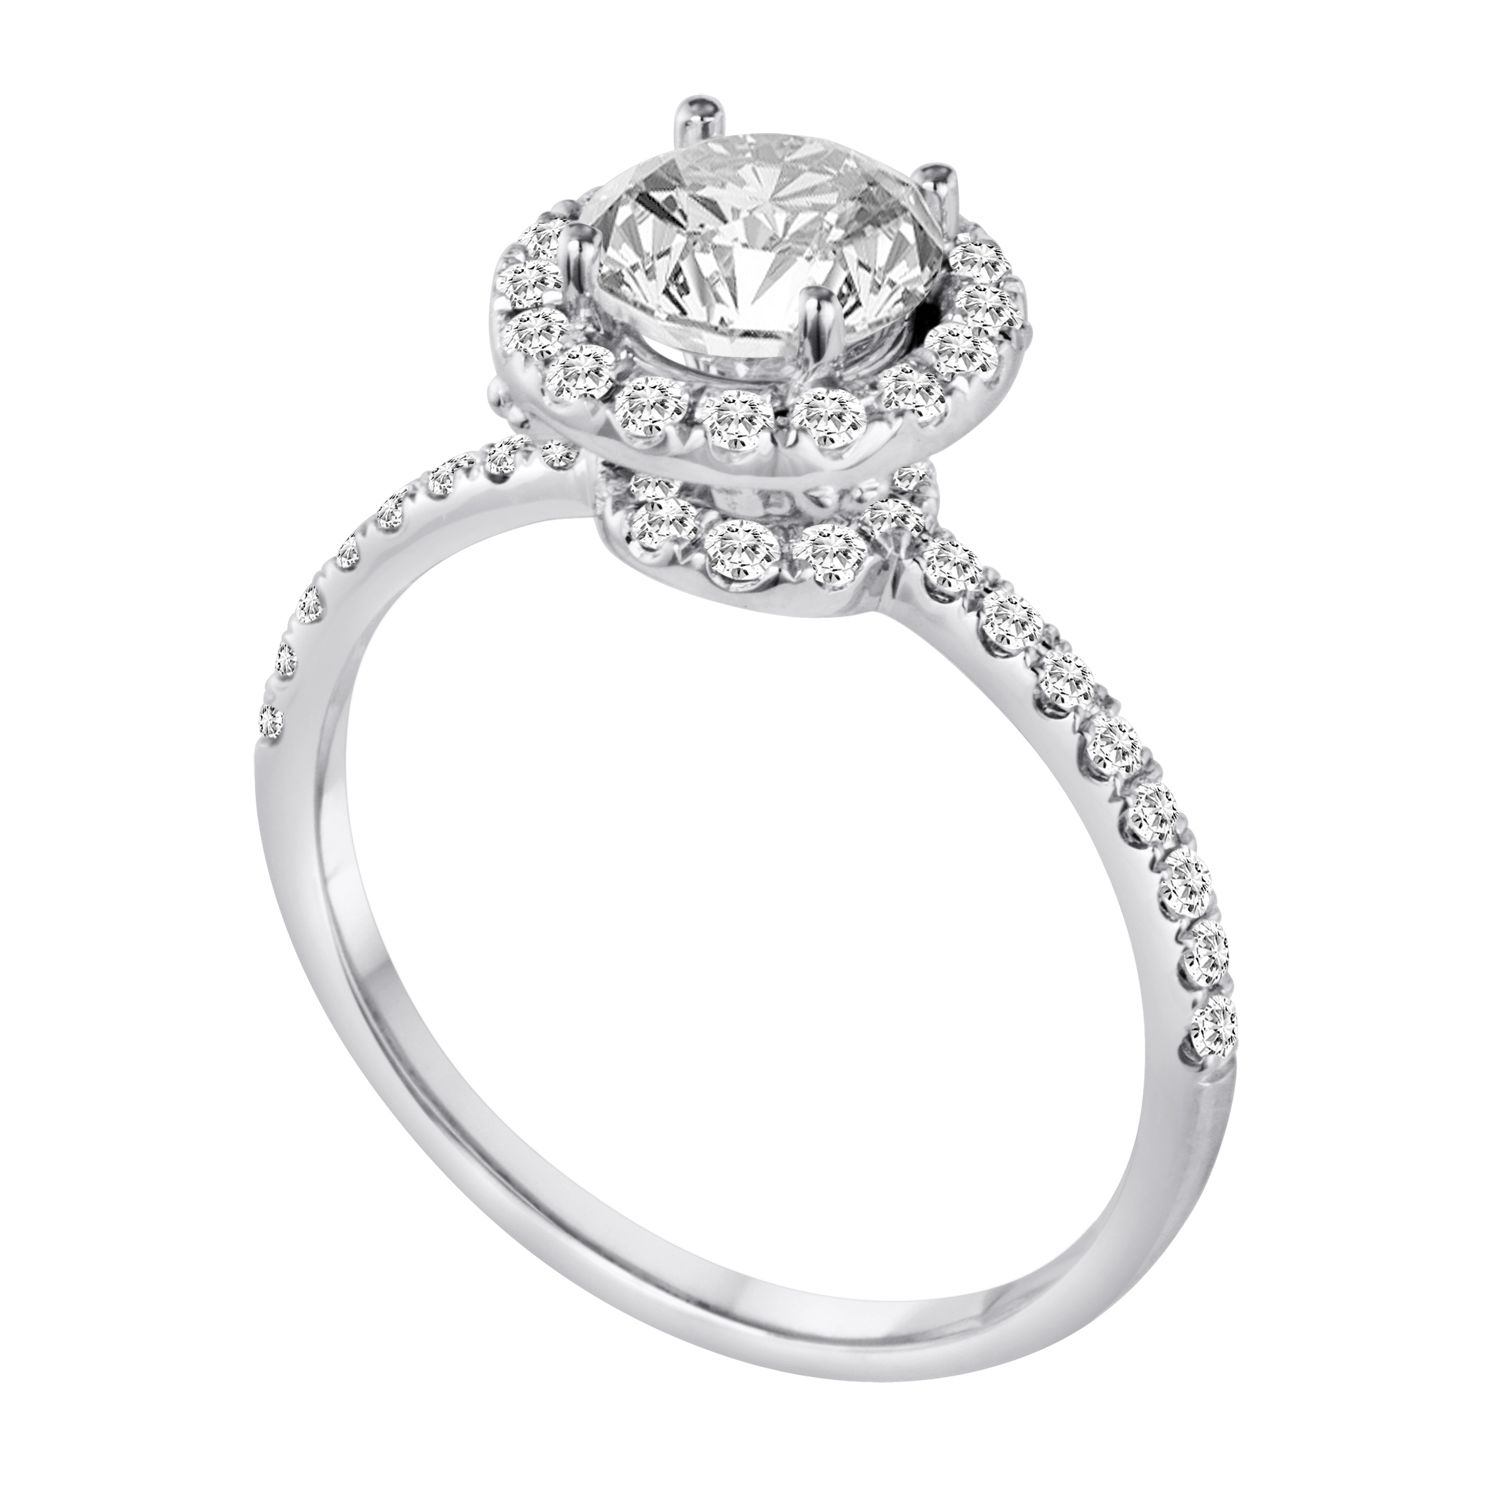 Gorgeous 18k White Gold Halo Diamond Engagement Ring With 39ctw Of Diamonds Center S White Gold Engagement Rings Halo Engagement Rings Dream Engagement Rings